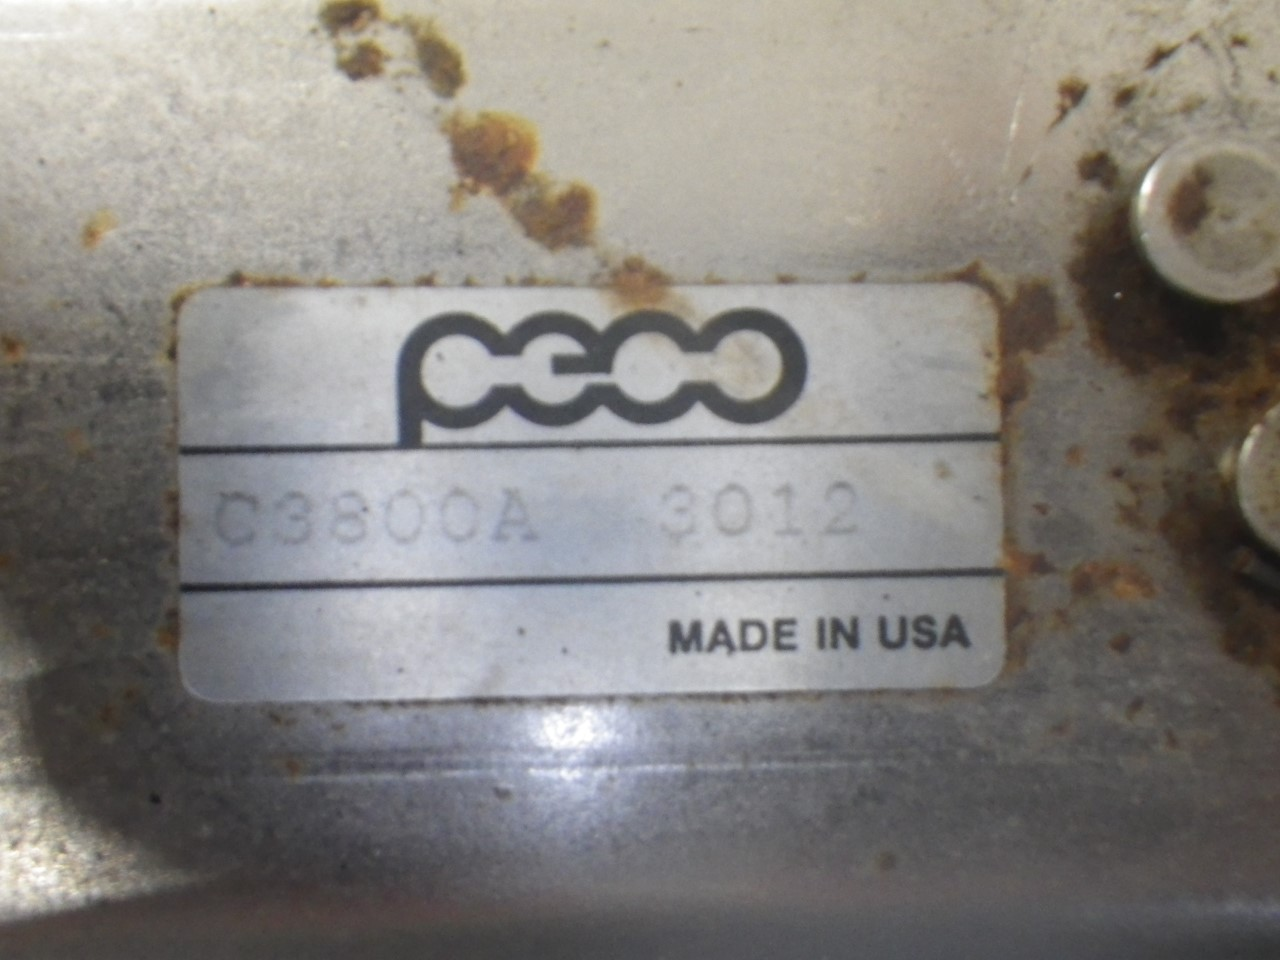 IMGP6937C-3801 C-3800A 3012Peco Electro-arm Controls forPackage Inspection(Used Tested) (9)